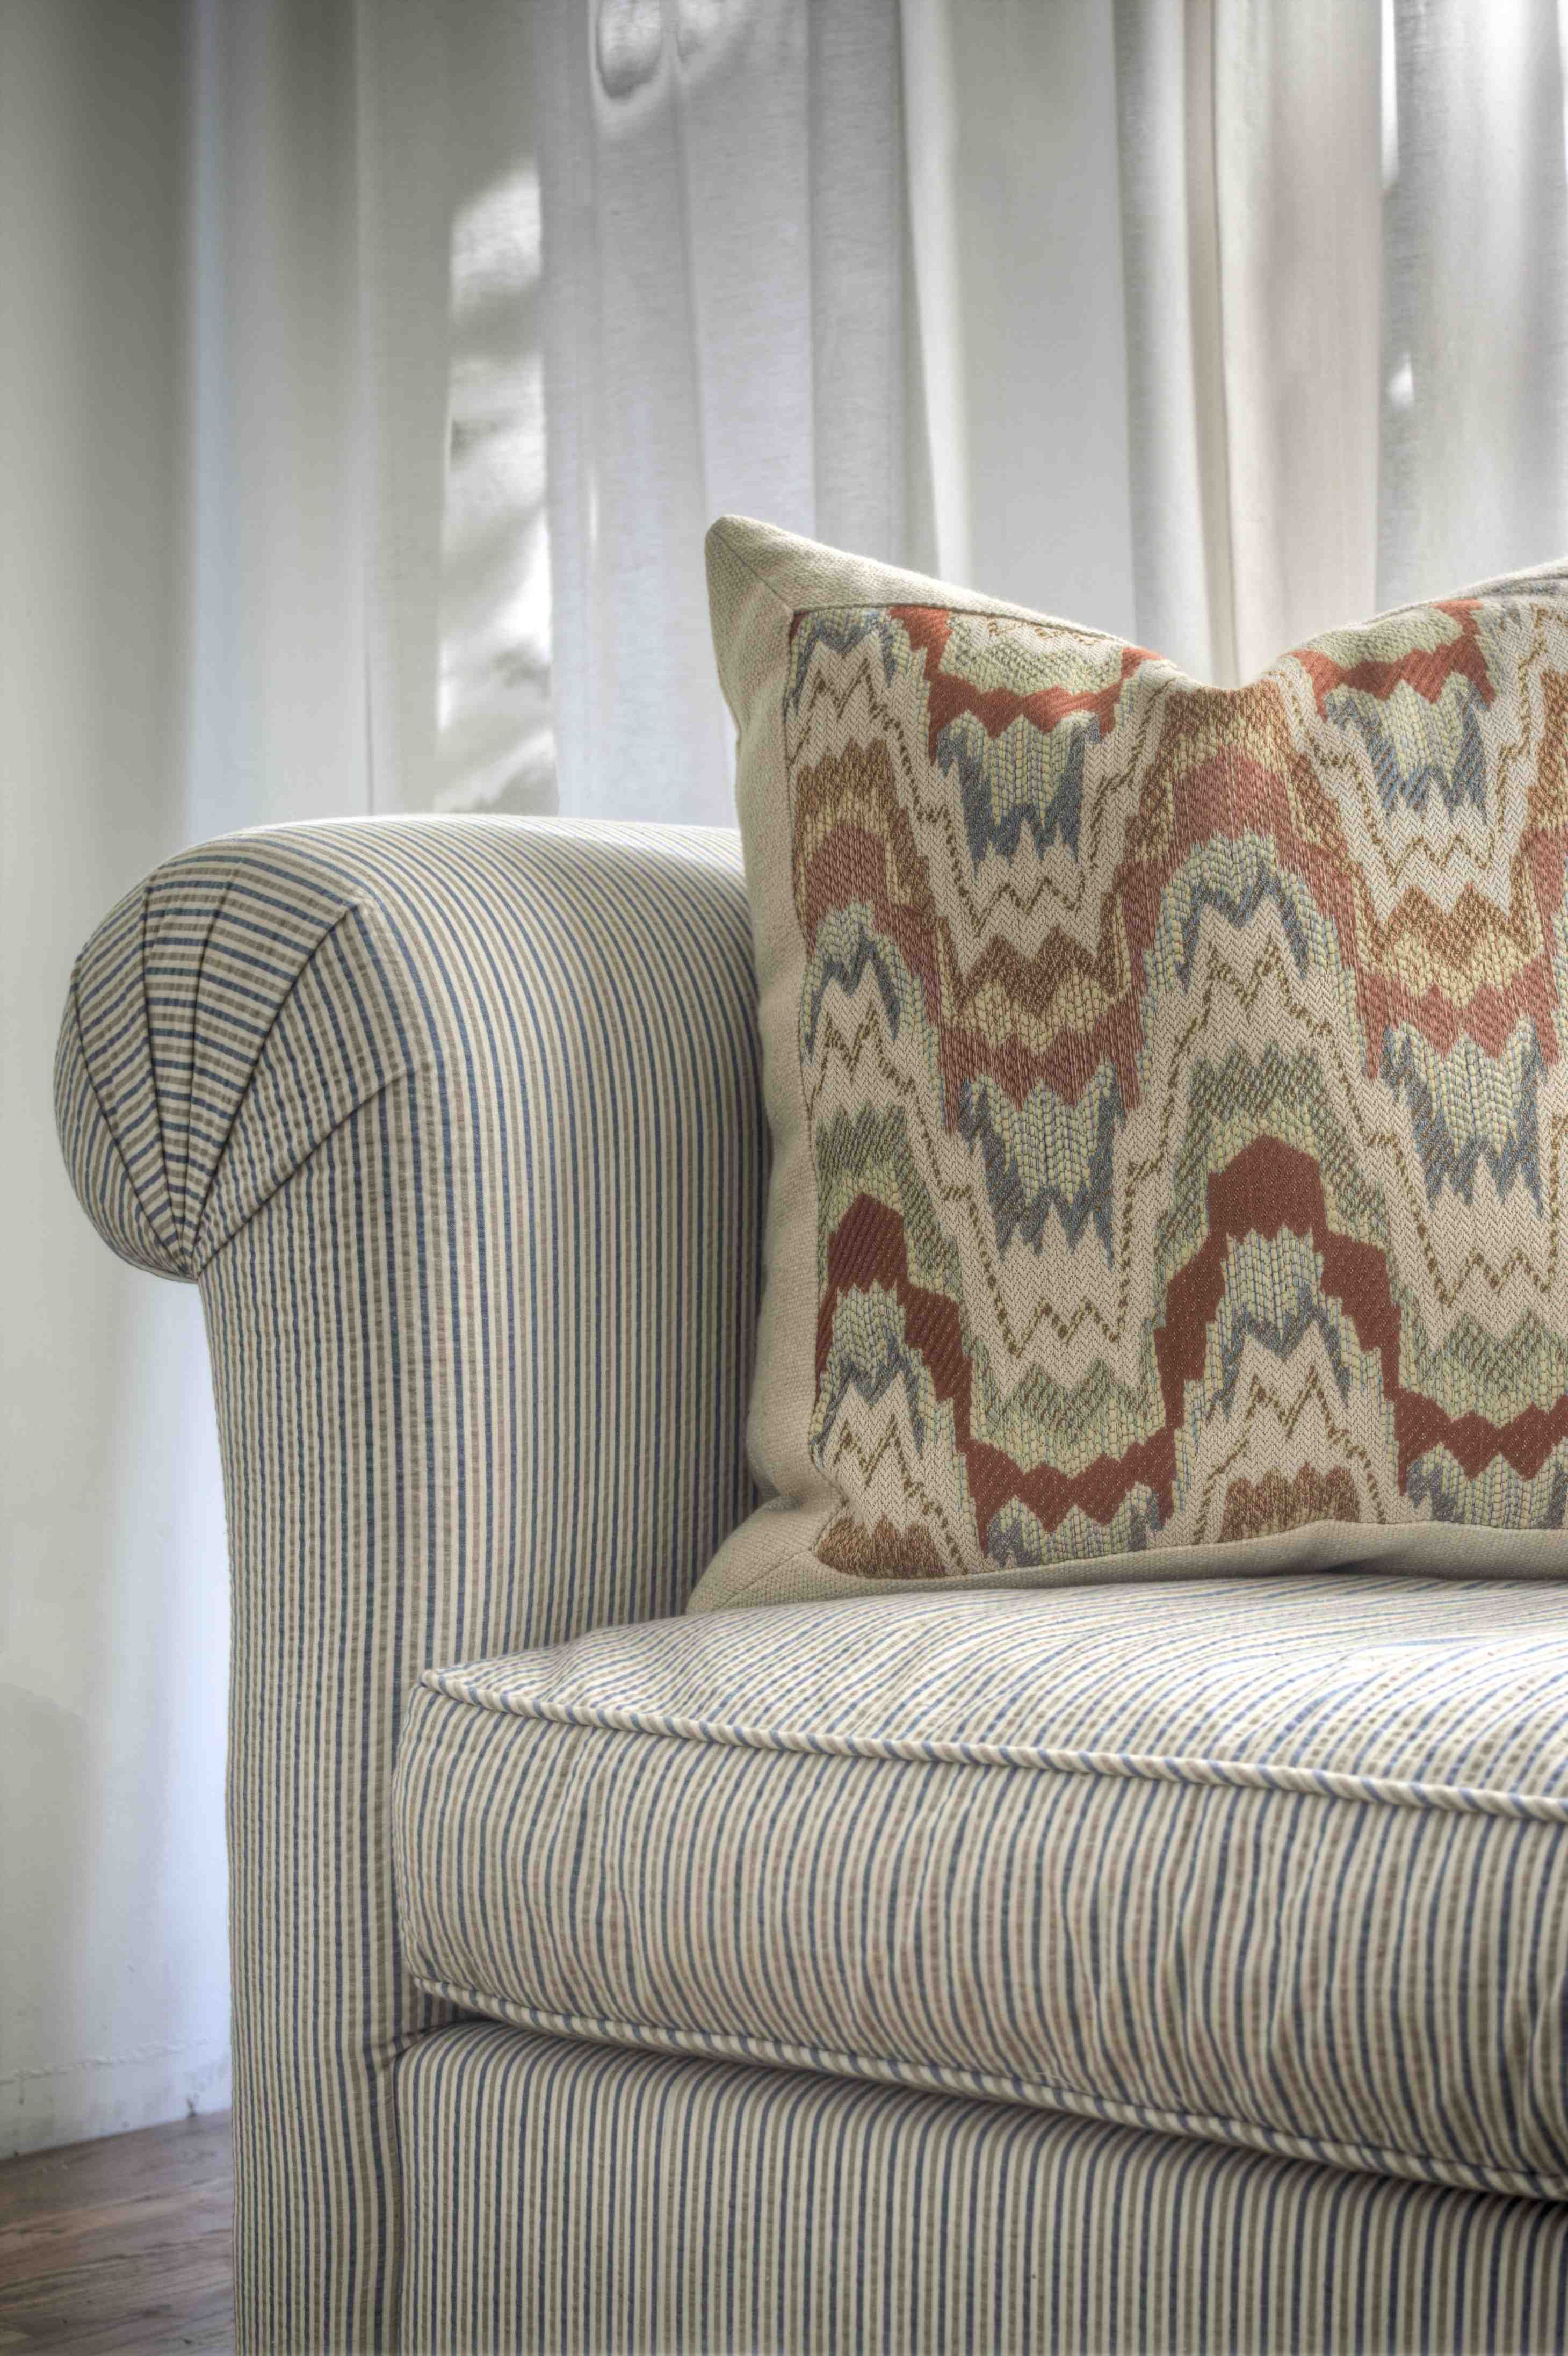 decorate missoni fall for curated use as pillow couches kravet trends decorations to throw pillows design grommet